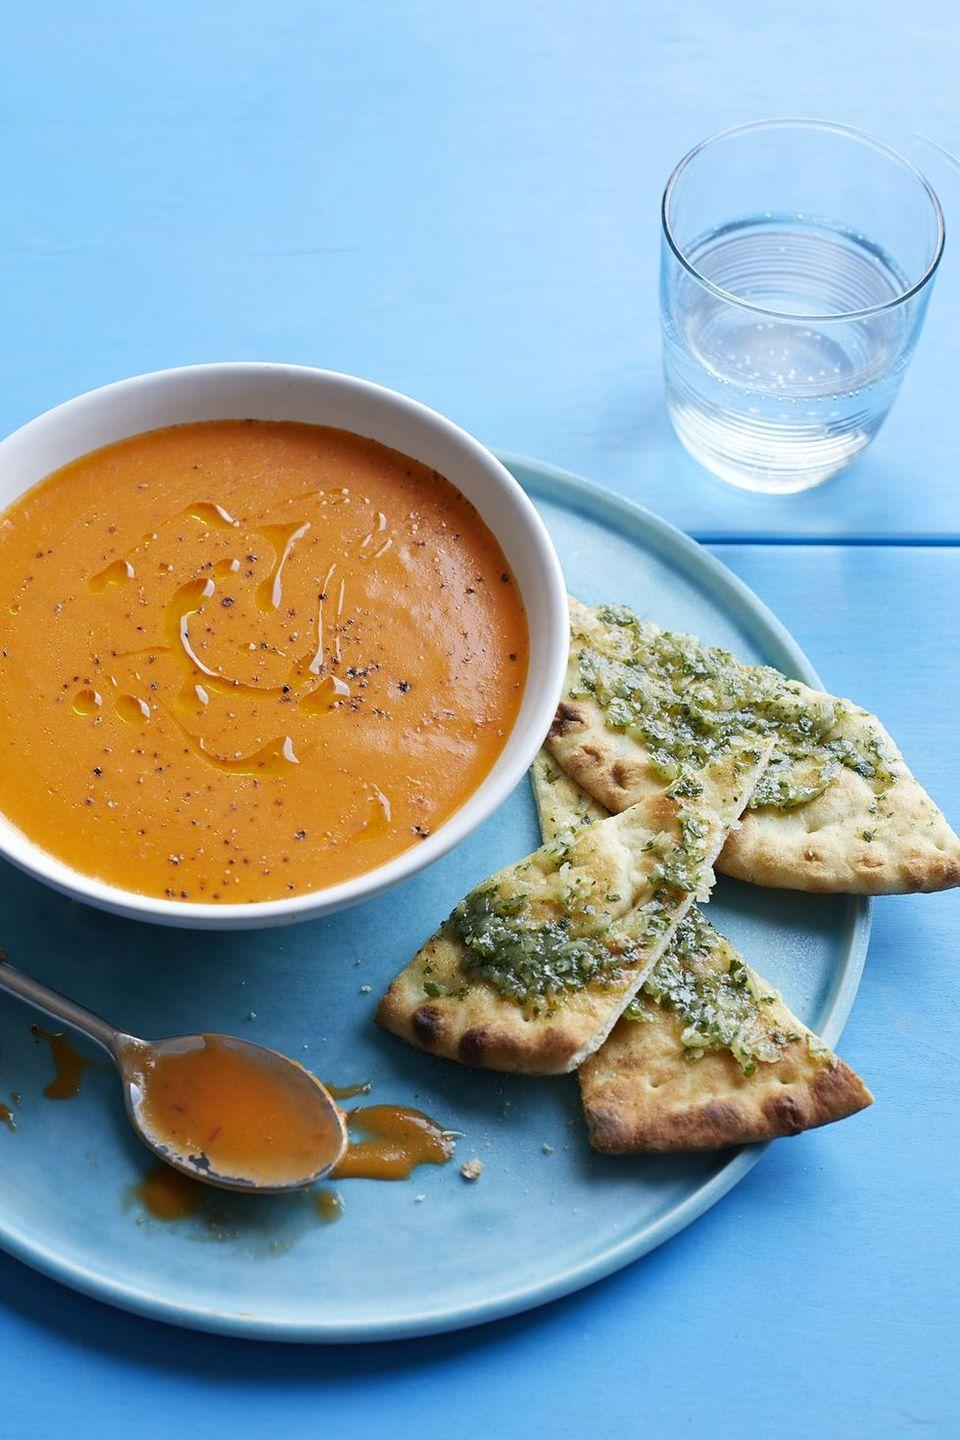 """<p>Nothing warms your soul better than a creamy tomato soup. You'll love the spicy kick this recipe has to it.</p><p><a href=""""https://www.womansday.com/food-recipes/food-drinks/recipes/a59774/spiced-tomato-soup-flatbread-recipe/?visibilityoverride"""" rel=""""nofollow noopener"""" target=""""_blank"""" data-ylk=""""slk:Get the Spiced Tomato Soup with Flatbread recipe."""" class=""""link rapid-noclick-resp""""><em>Get the Spiced Tomato Soup with Flatbread recipe.</em></a></p>"""